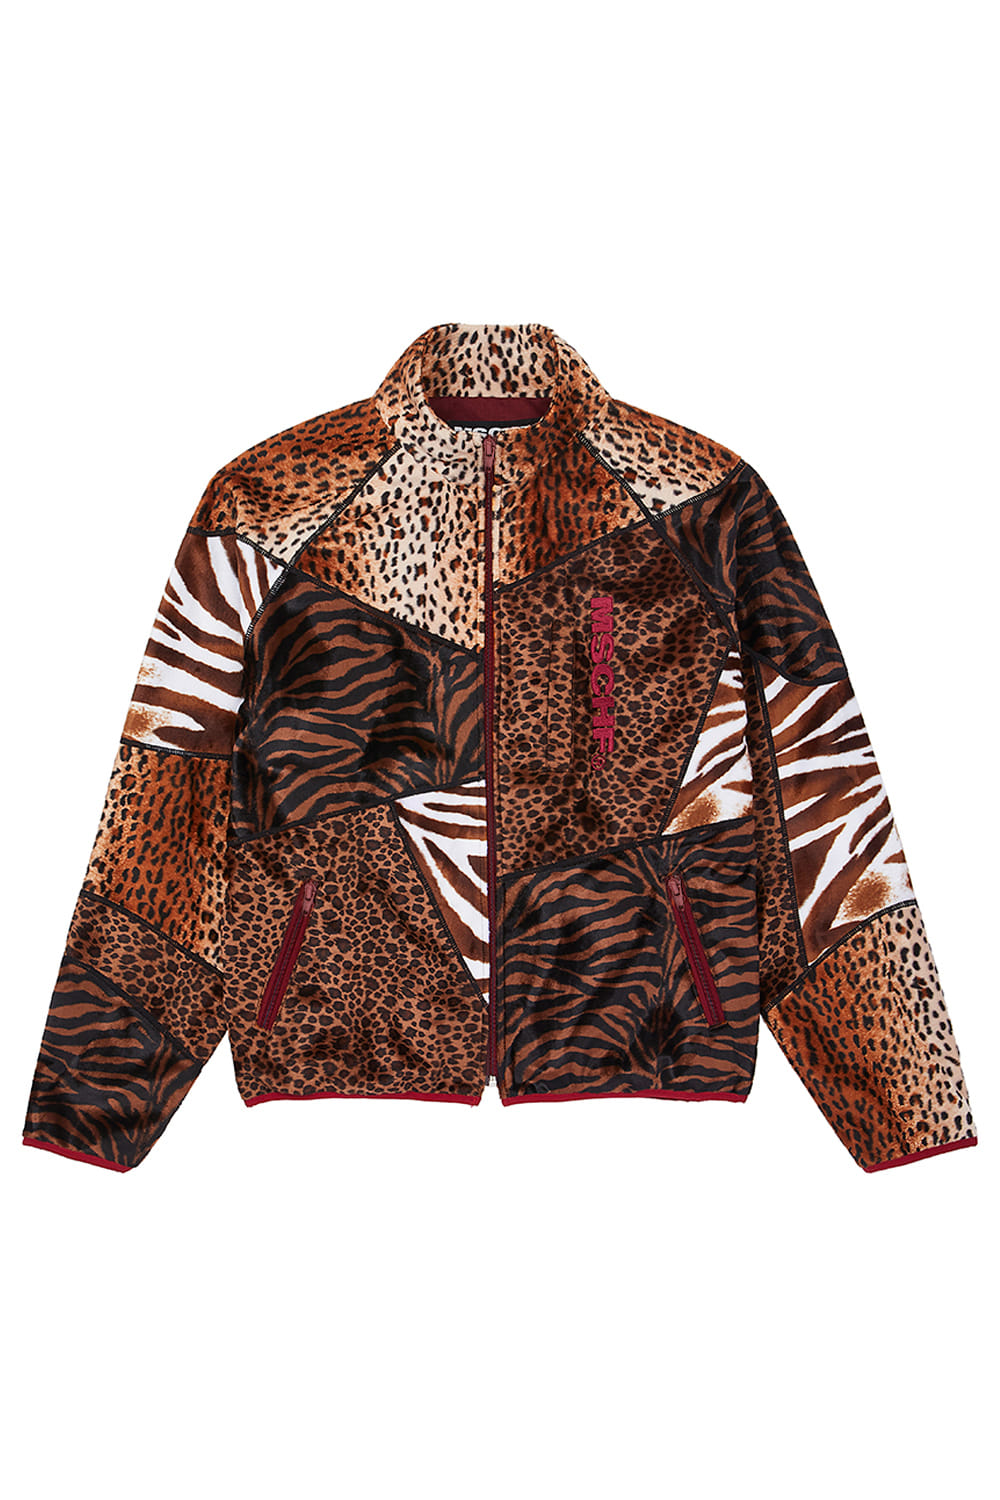 ANIMAL PATCHWORK ZIP UP_multi